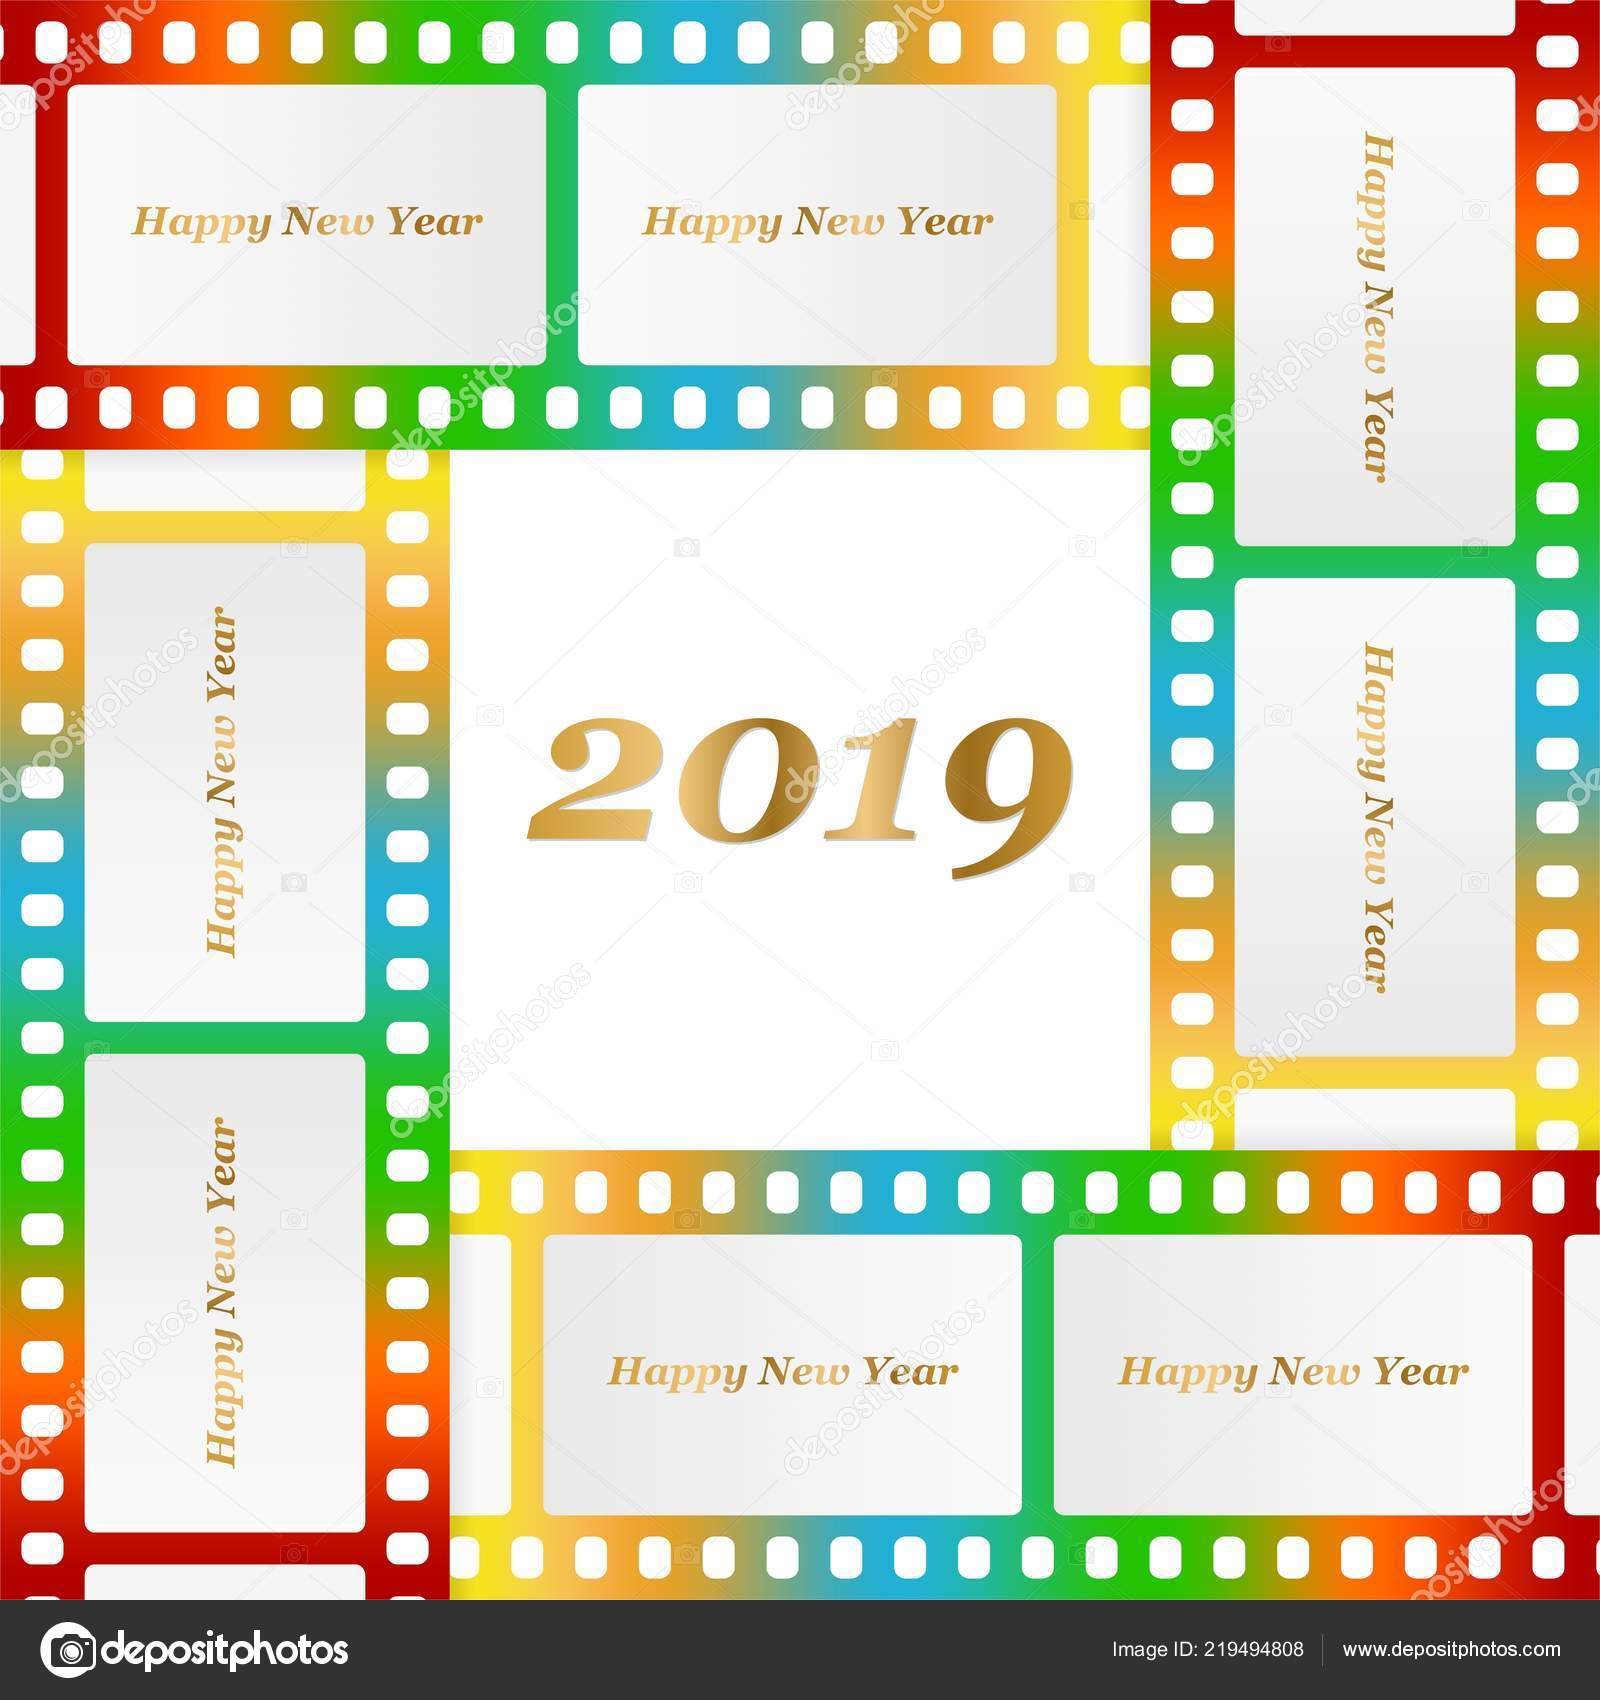 new year greetings 2019 colorful blank film photographic window golden stock vector